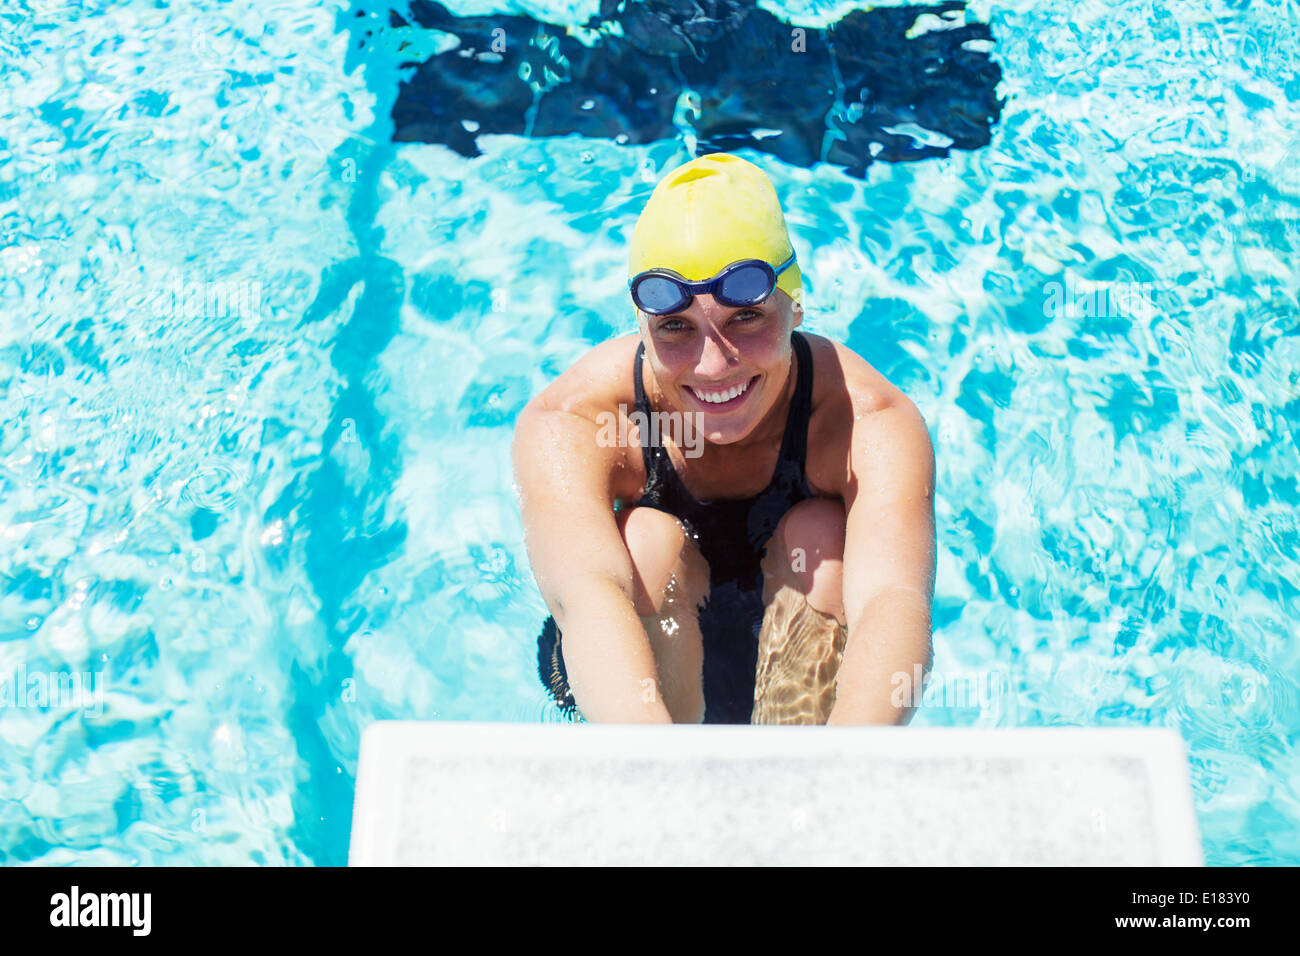 Portrait of smiling swimmer poised at starting block - Stock Image